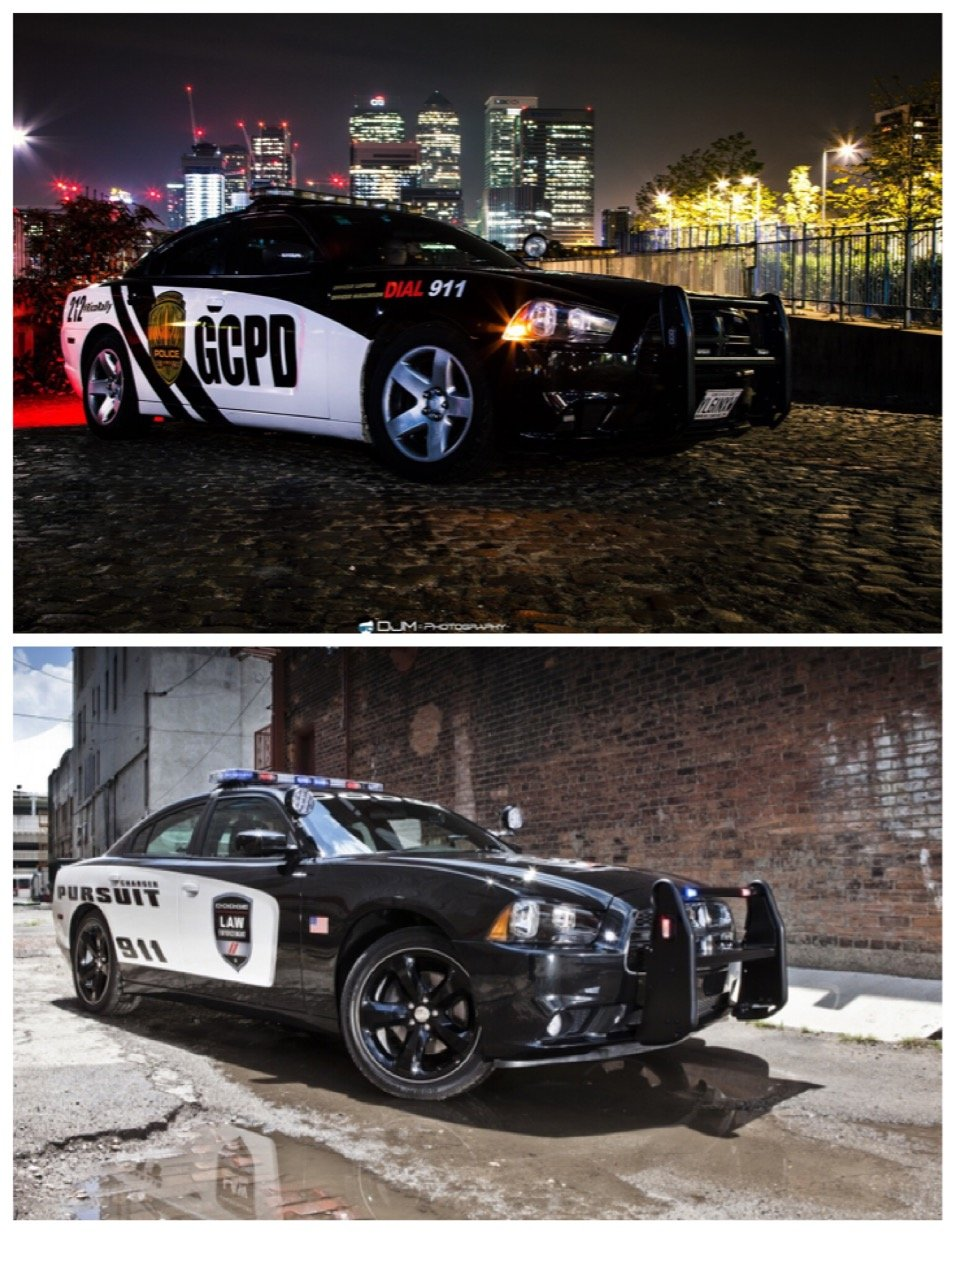 2014 Dodge Charger Pursuit V8 Hemi For Sale (picture 6 of 10)